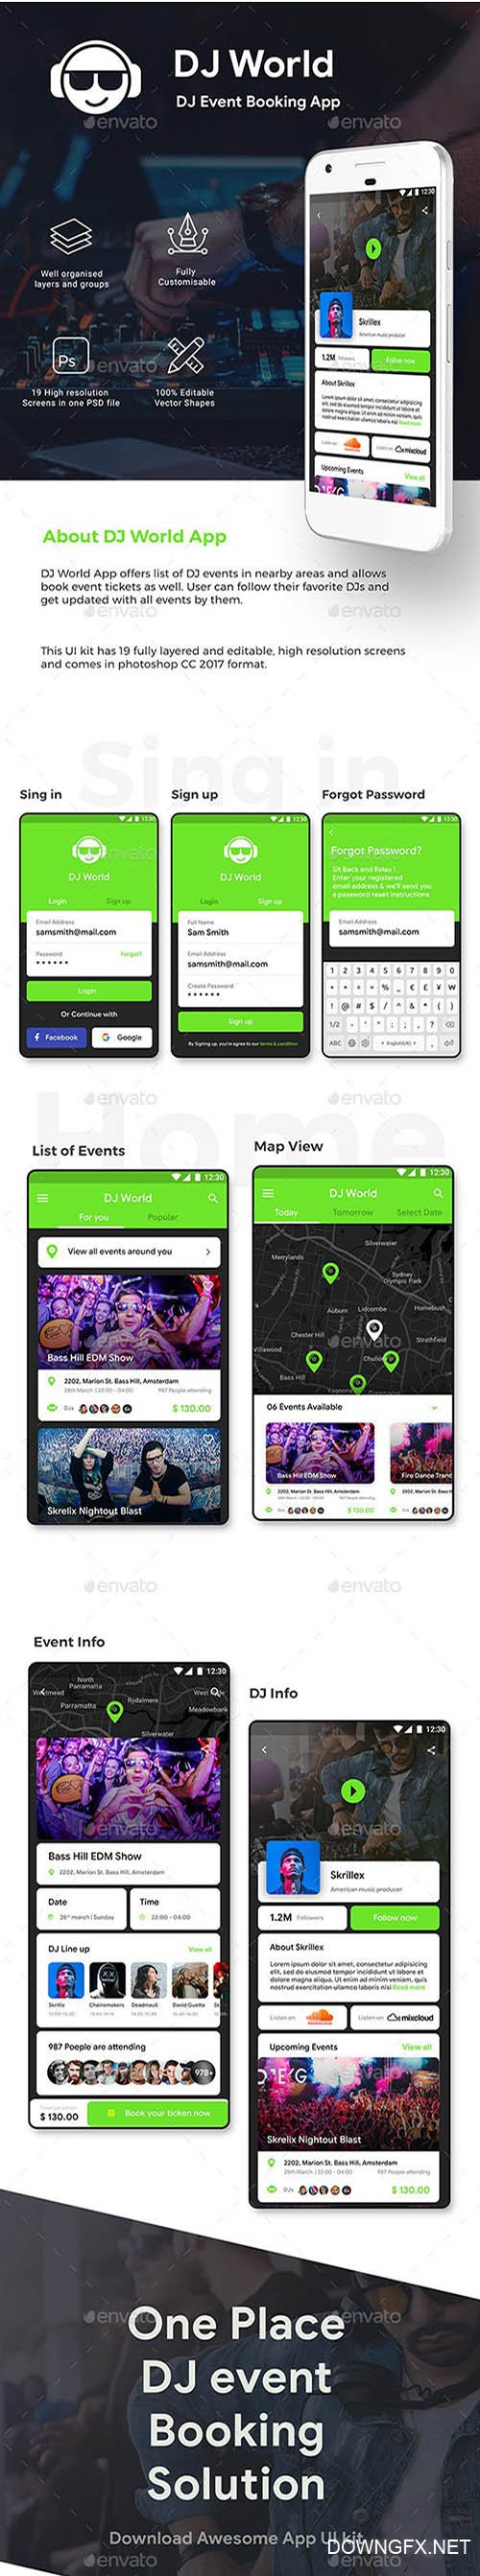 GR - DJ Event Booking App UI Kit | DJ World 23268079